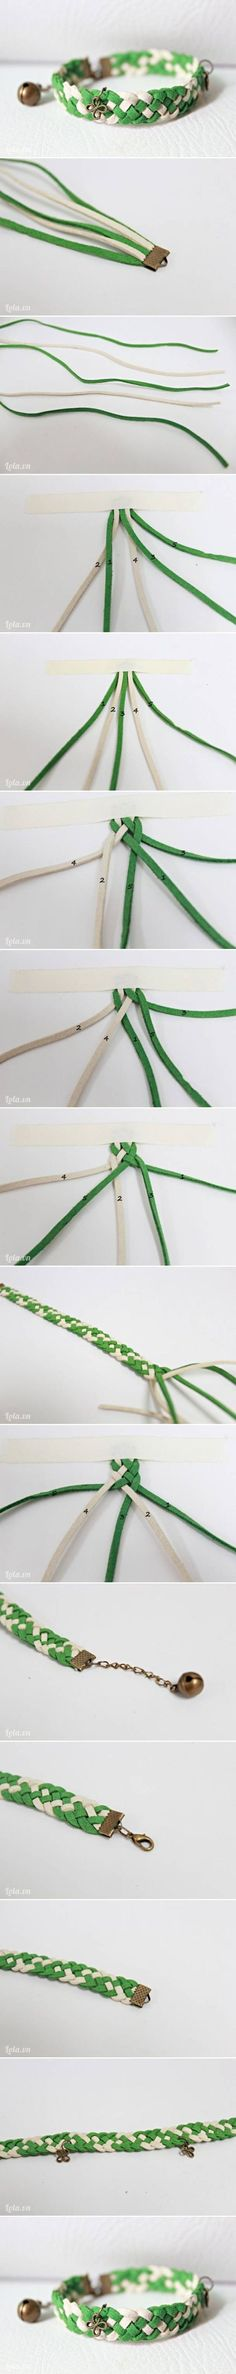 DIY bracelet | www.bykaro.nl for your jewelry making supplies: